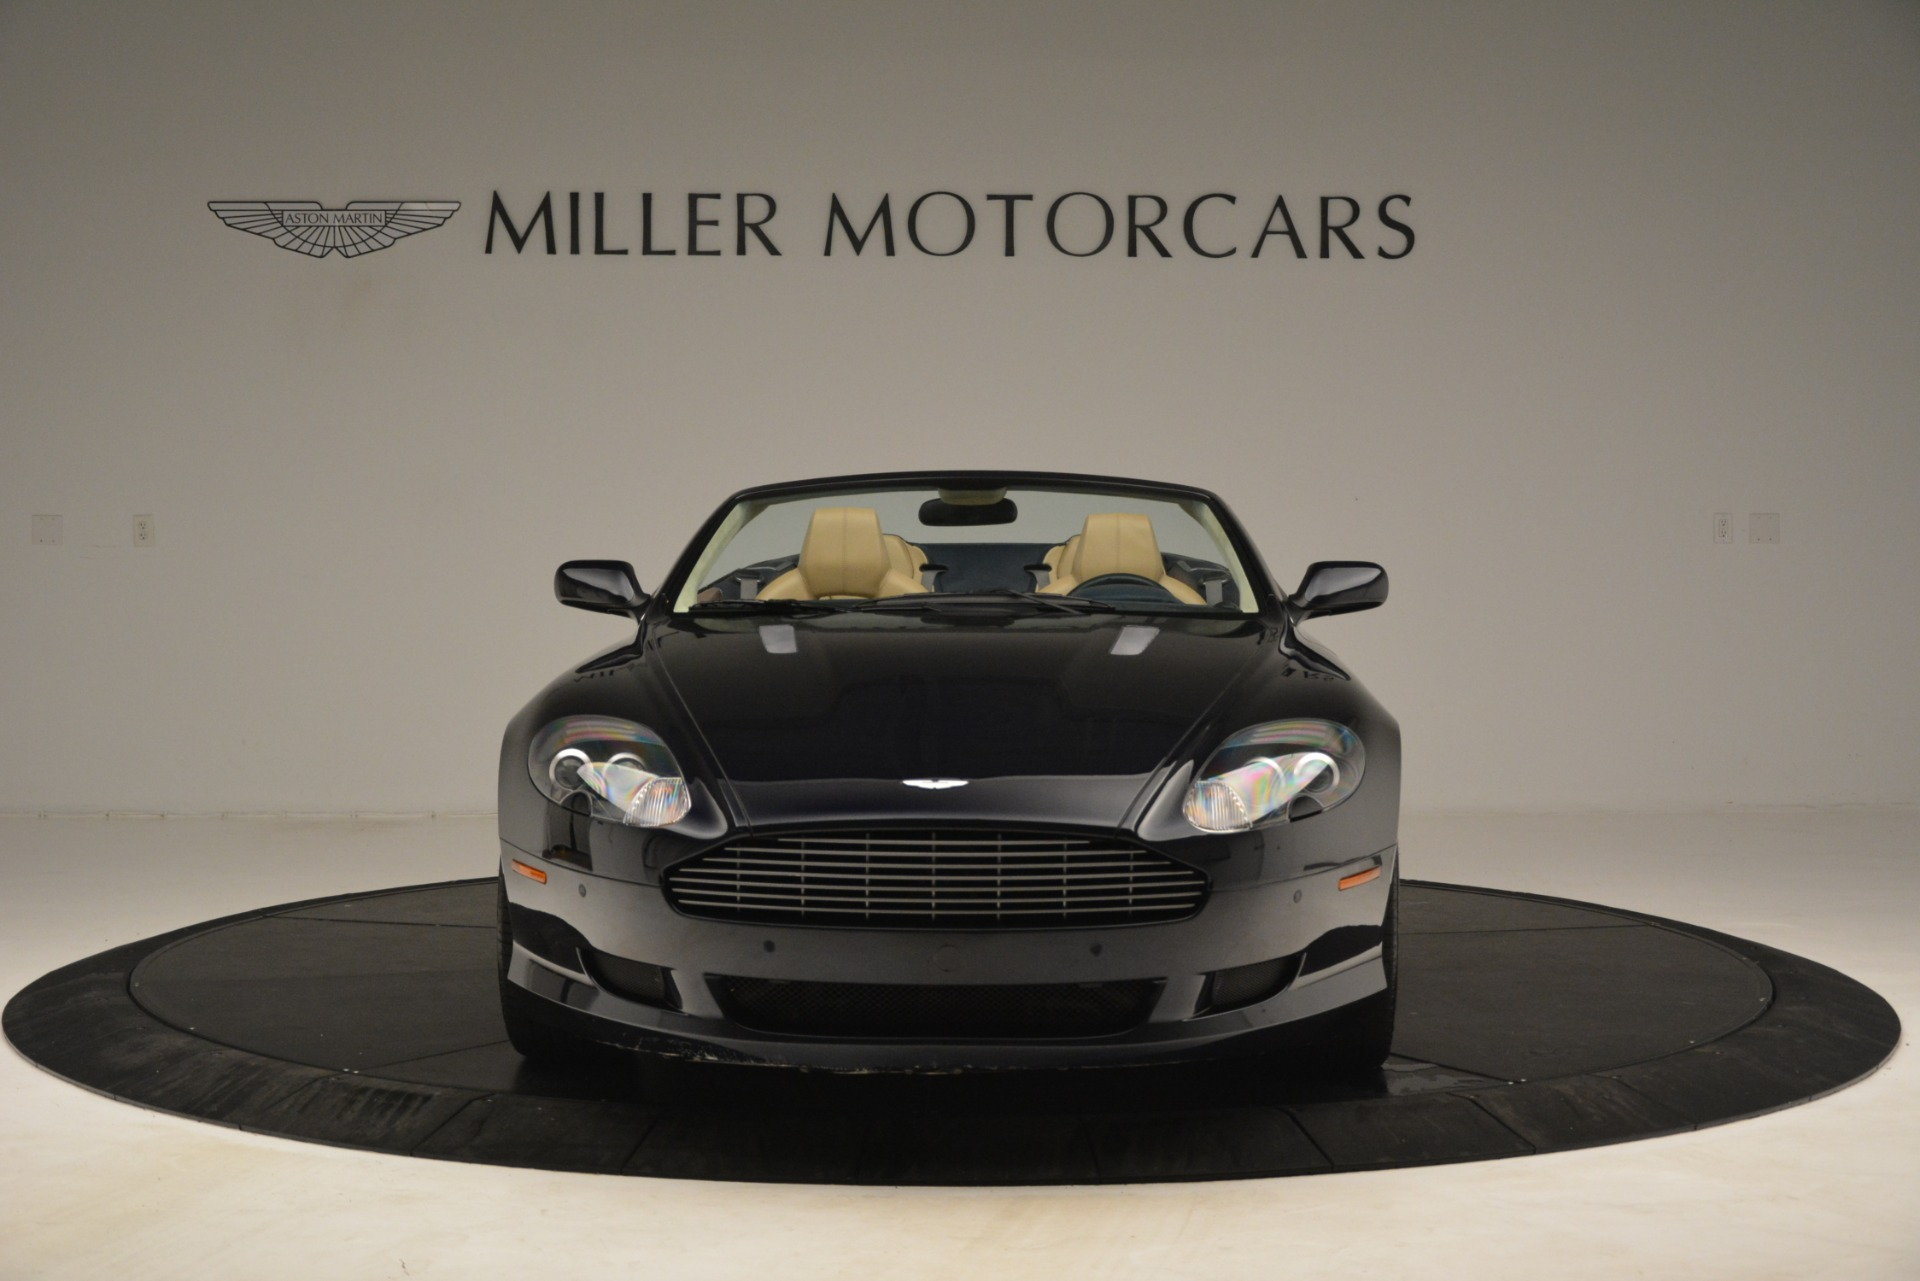 Used 2007 Aston Martin DB9 Convertible For Sale In Westport, CT 3291_p12